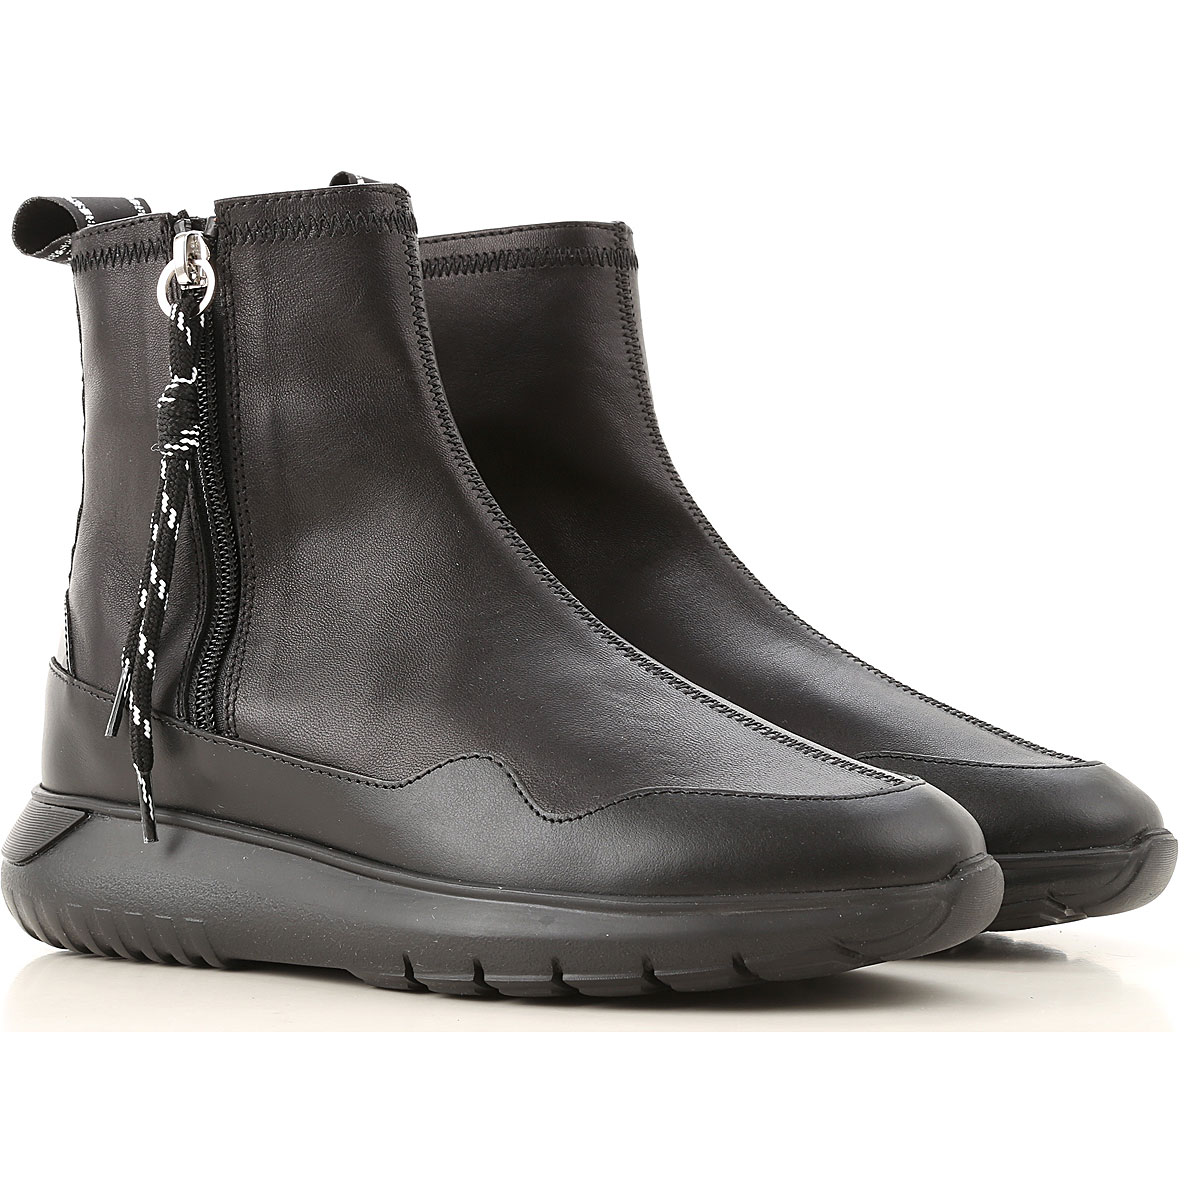 Hogan Boots for Women, Booties On Sale, Black, Leather, 2019, 5 5.5 6 6.5 7 8 8.5 9 9.5